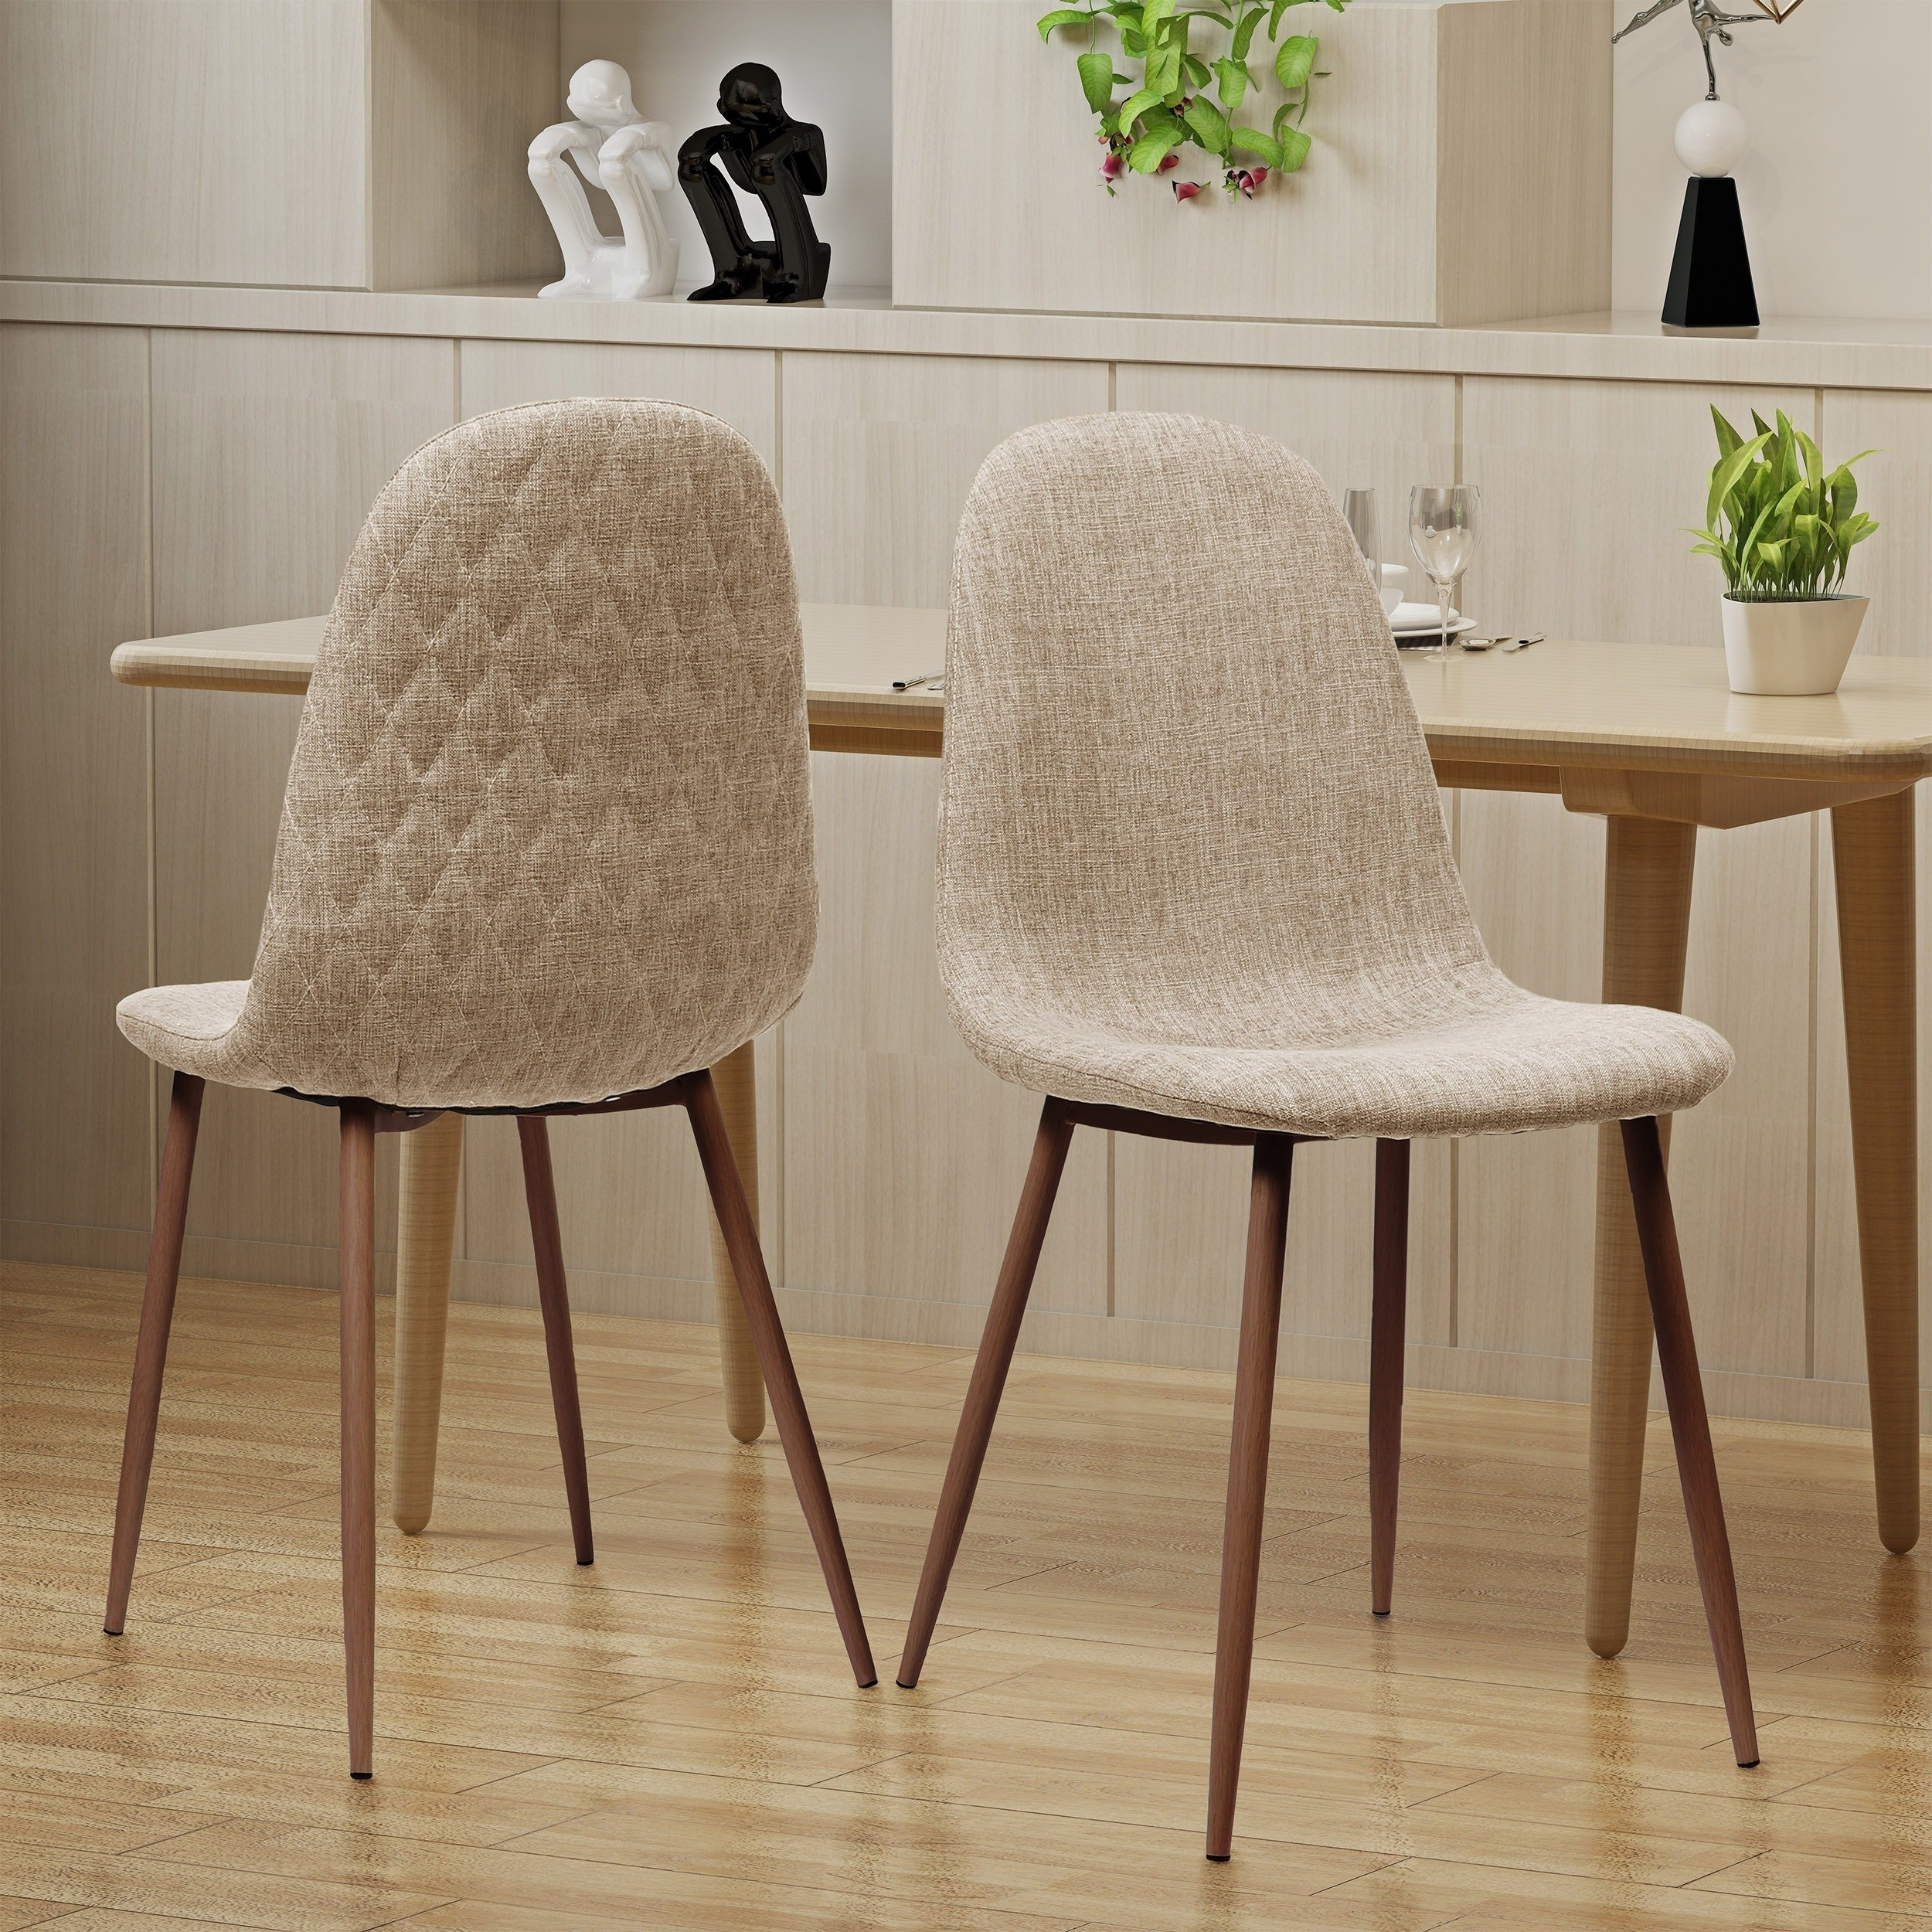 2018 Shop Caden Mid Century Fabric Dining Chair (Set Of 2)Christopher Within Caden 7 Piece Dining Sets With Upholstered Side Chair (View 5 of 25)